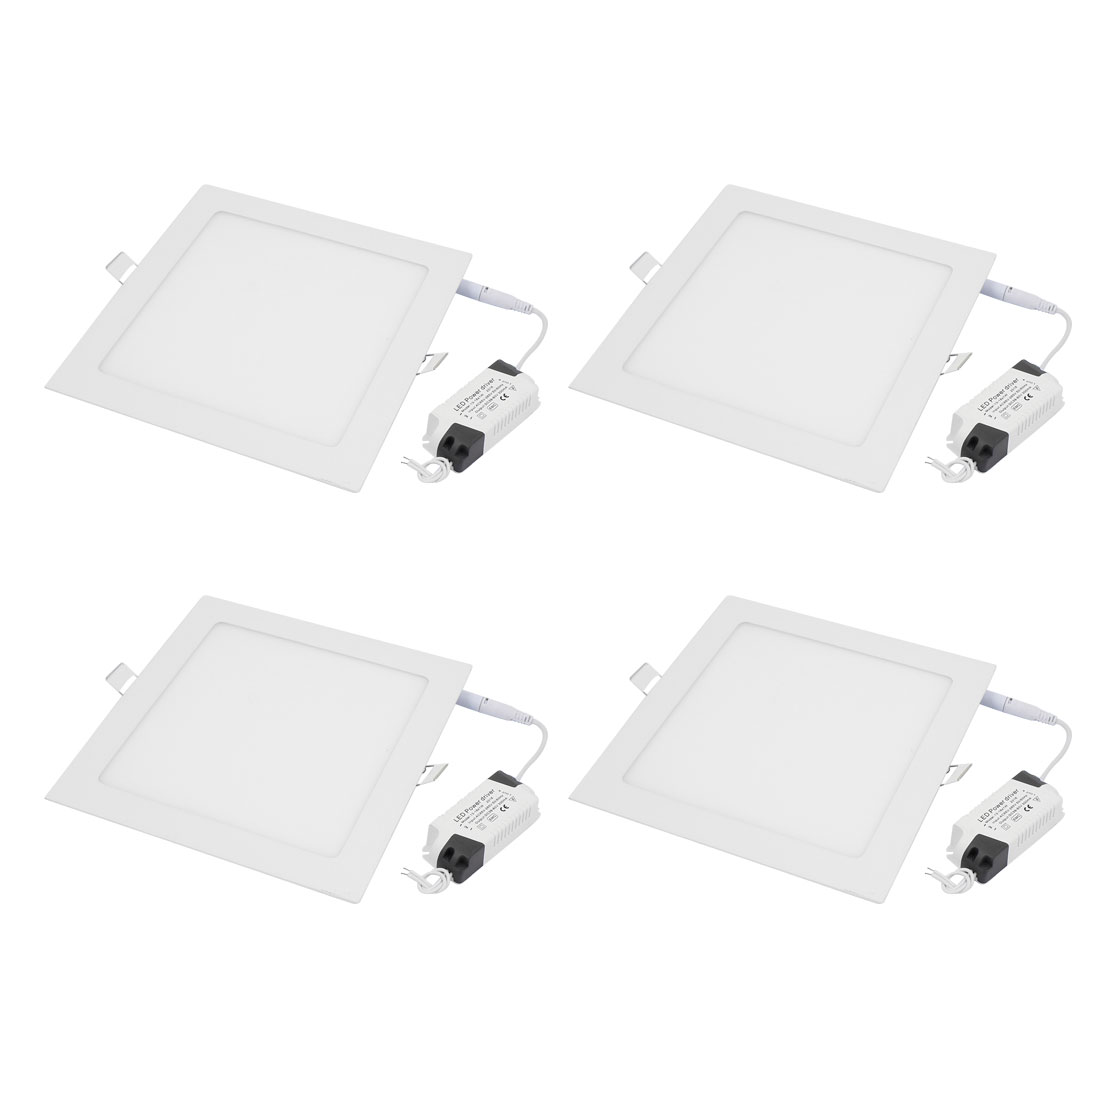 4Pcs AC85V-265V 18W Ultra Slim Square LED Recessed Ceiling Panel Light Lamp White